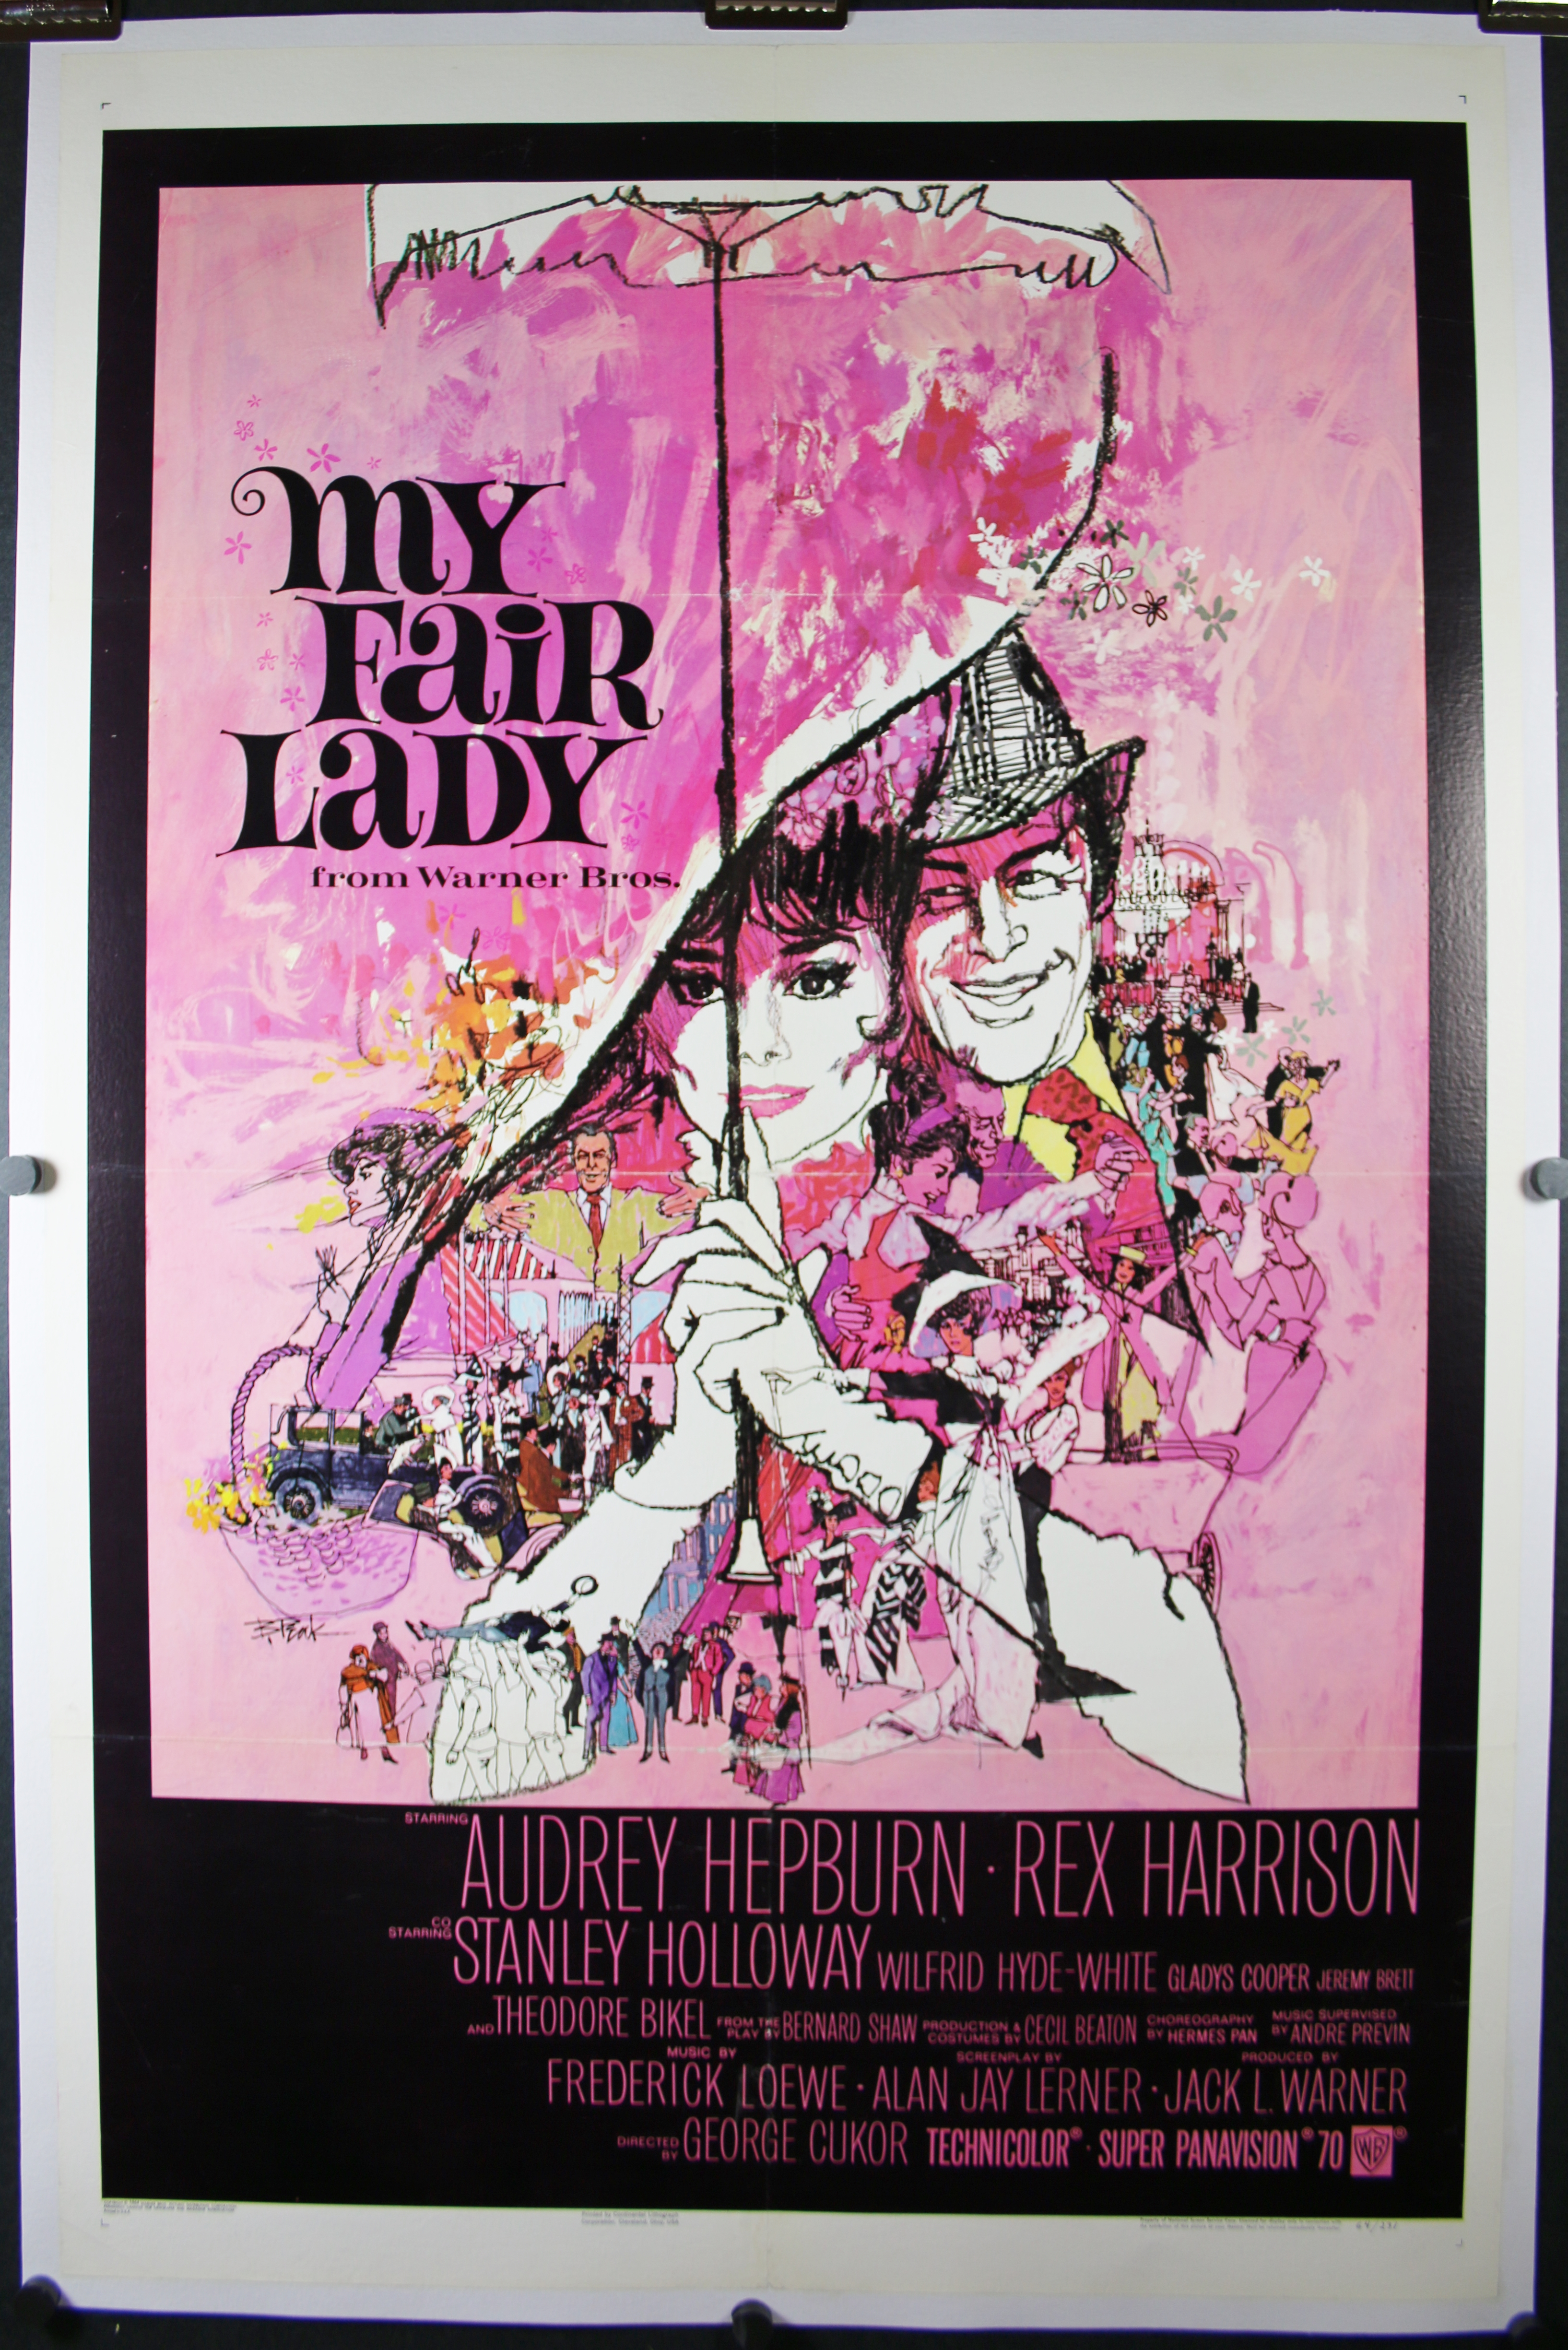 My Fair Lady CD1LB